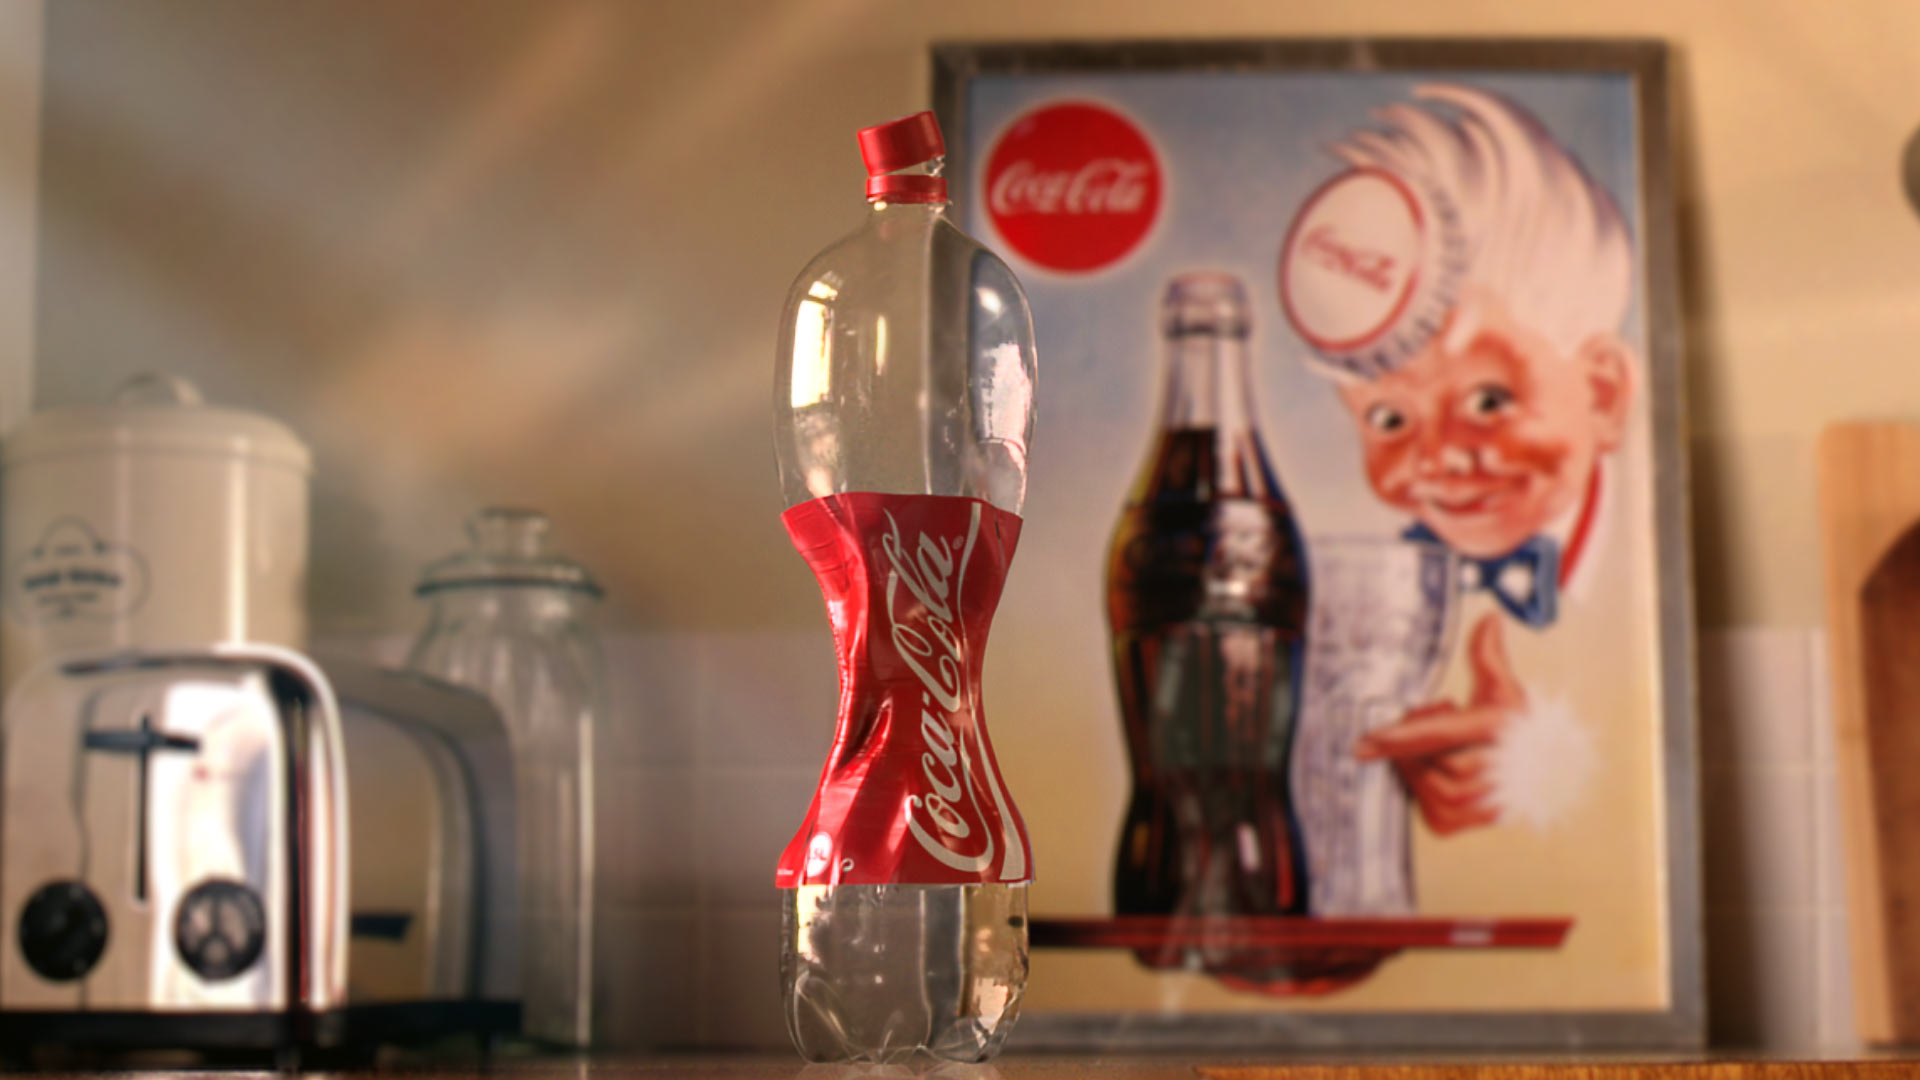 COCA COLA project thumbnail